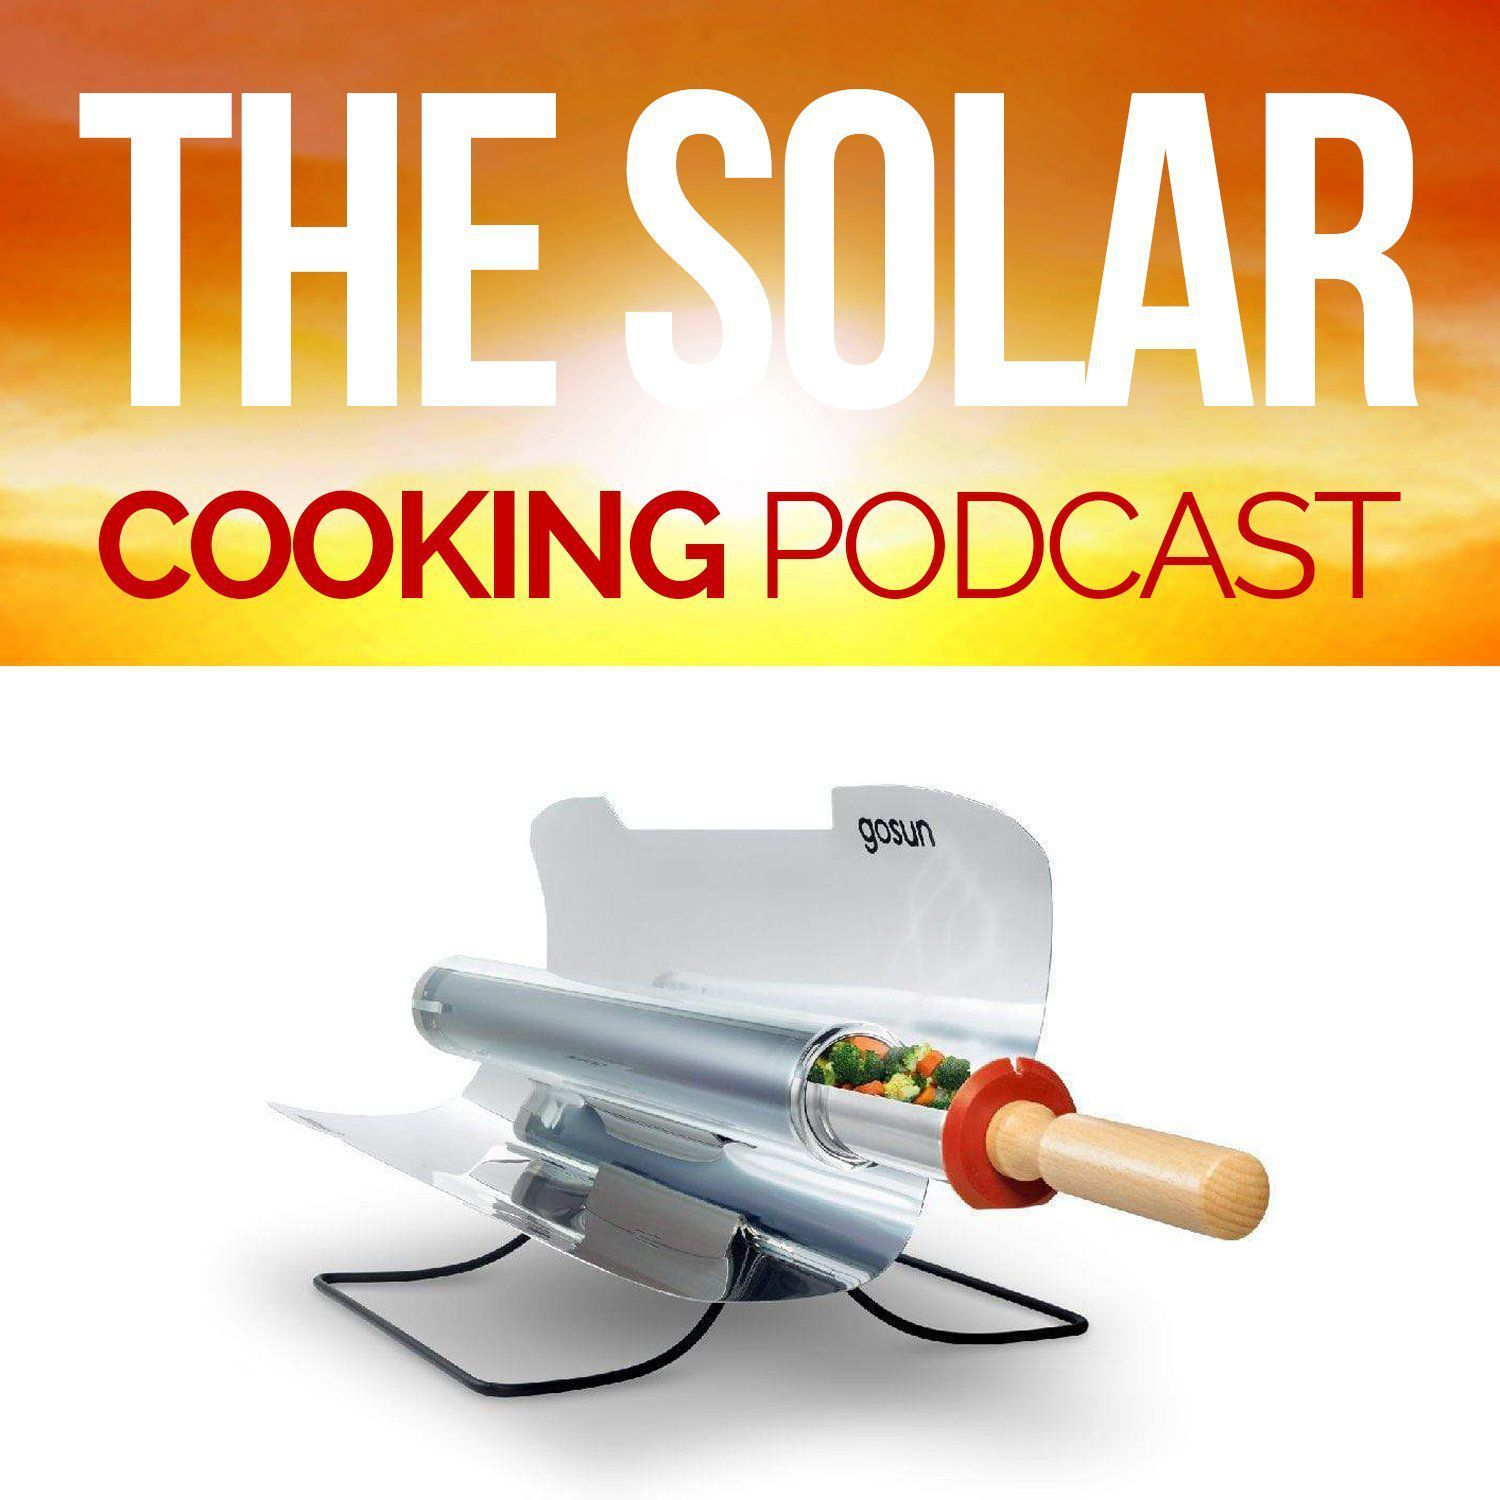 S1 Ep1: Welcome to the Solar Cooking Podcast!